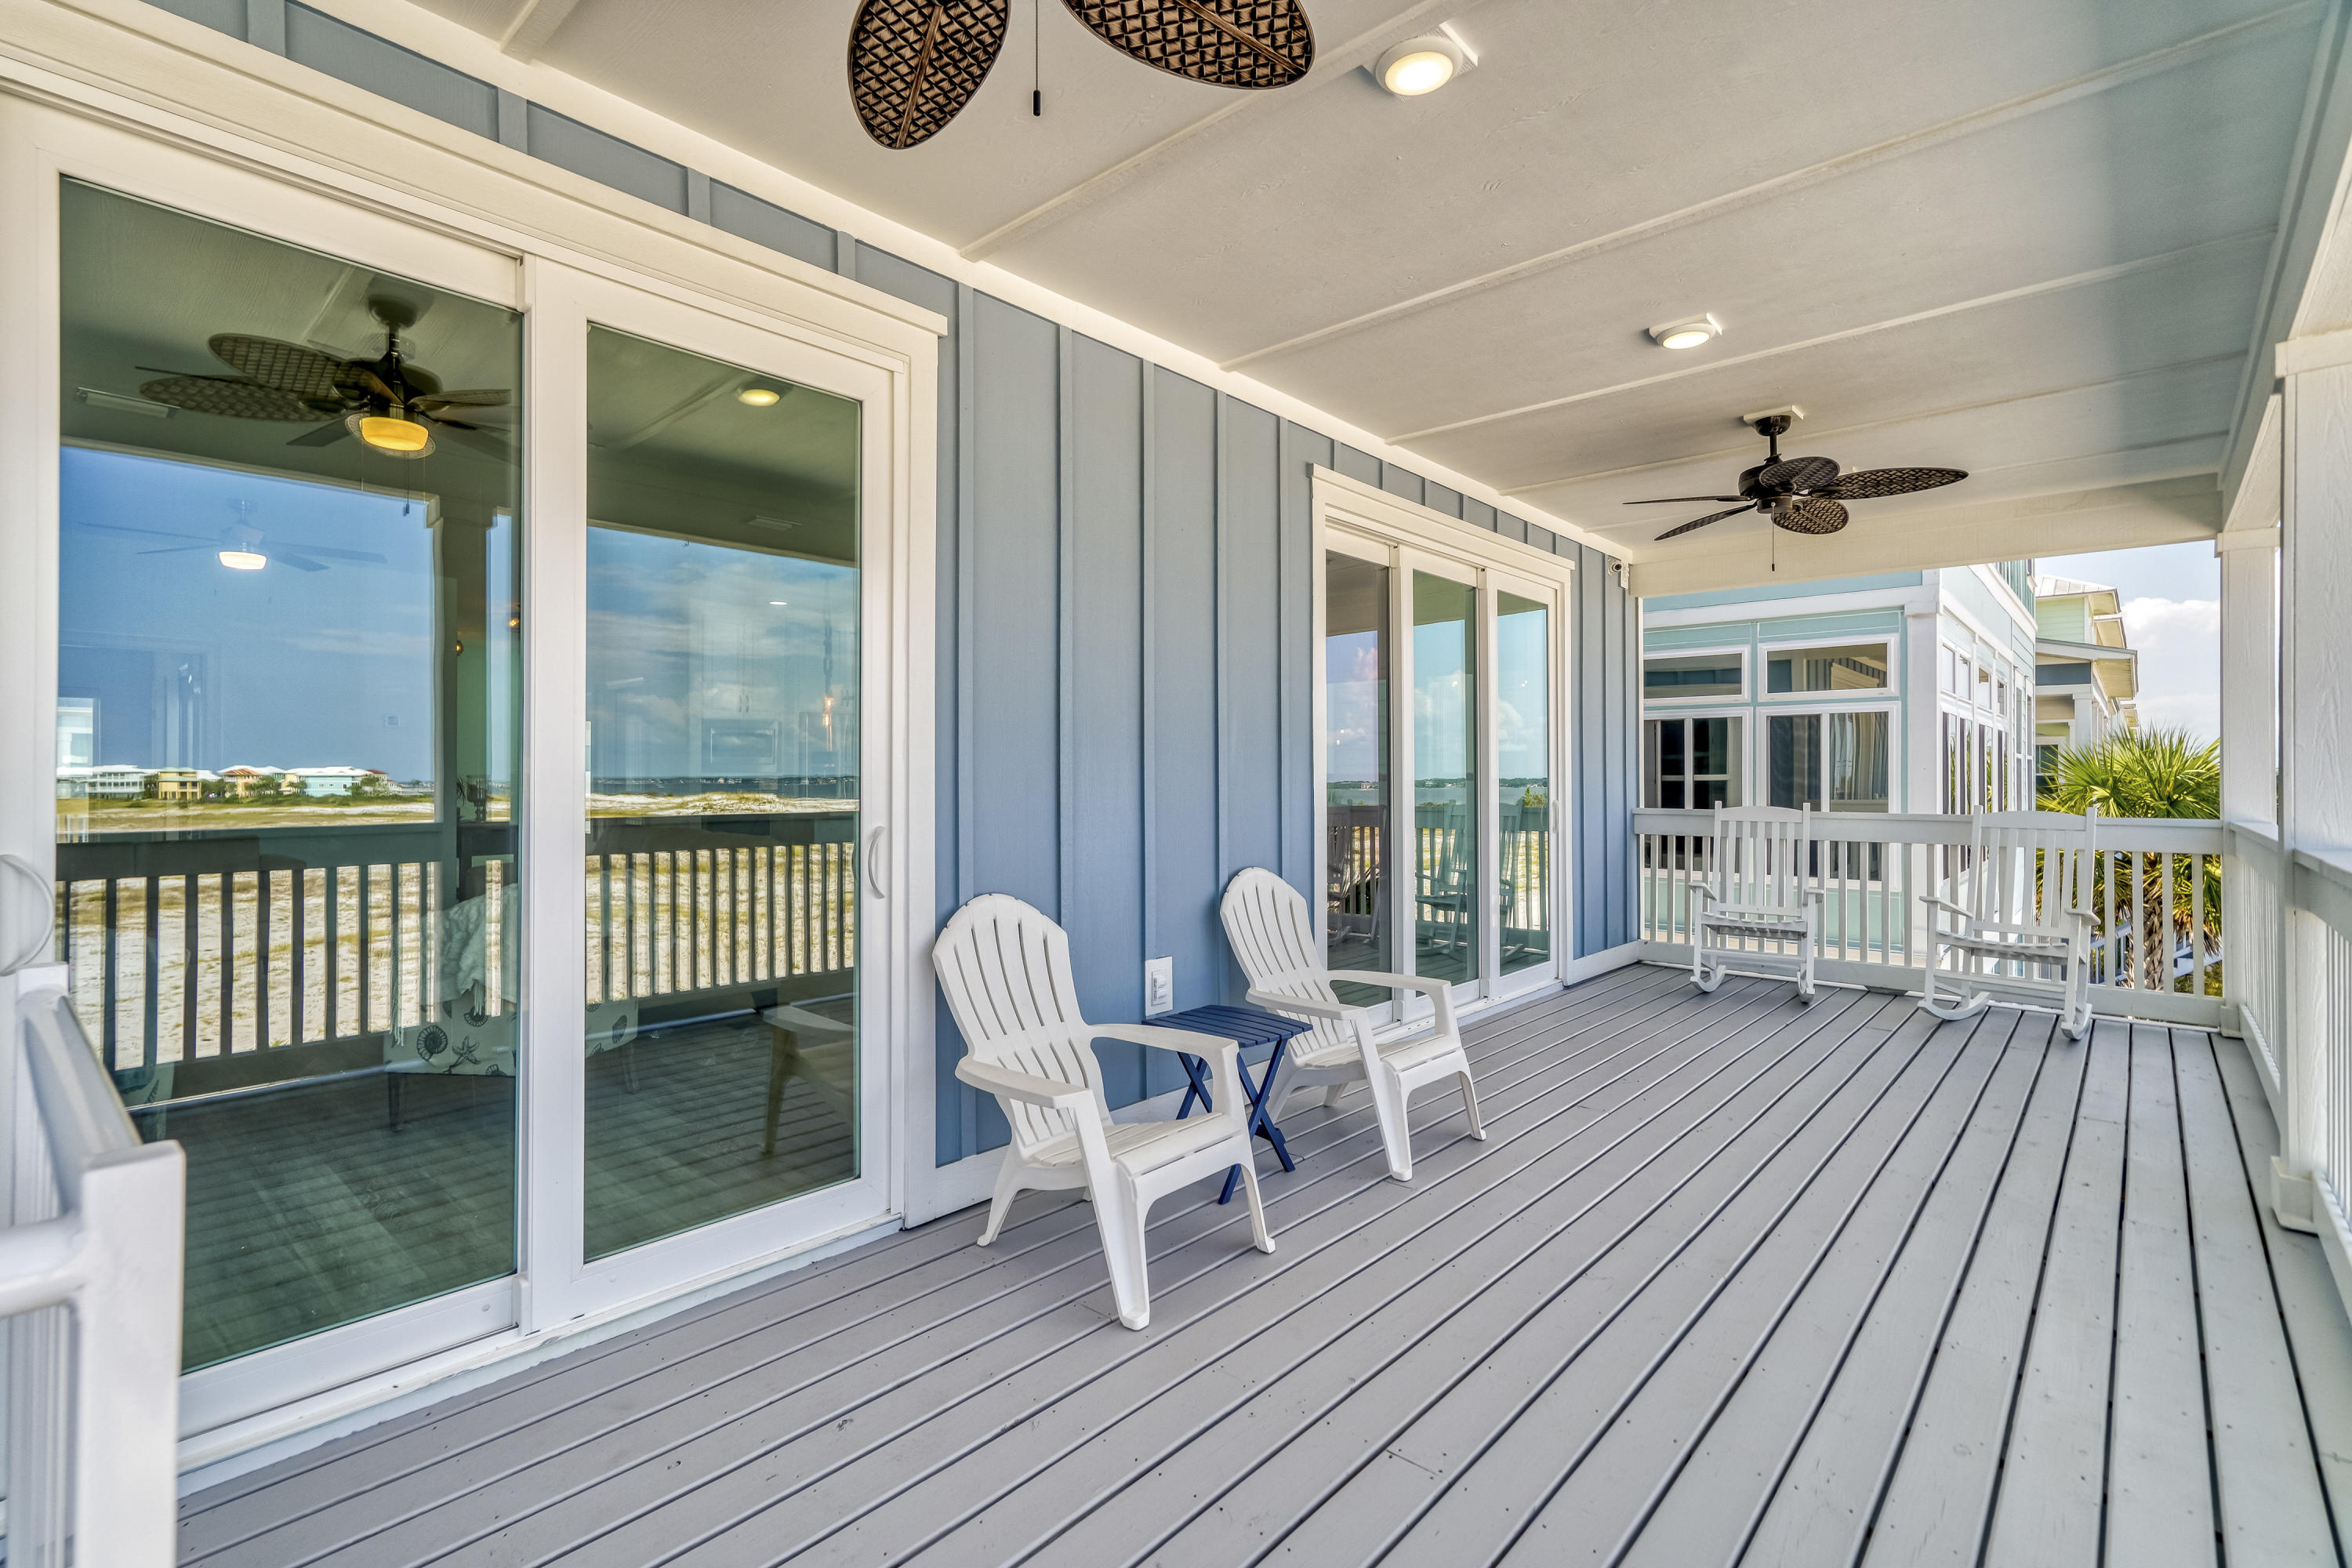 EXPANSIVE EASTERN DECK SIZE